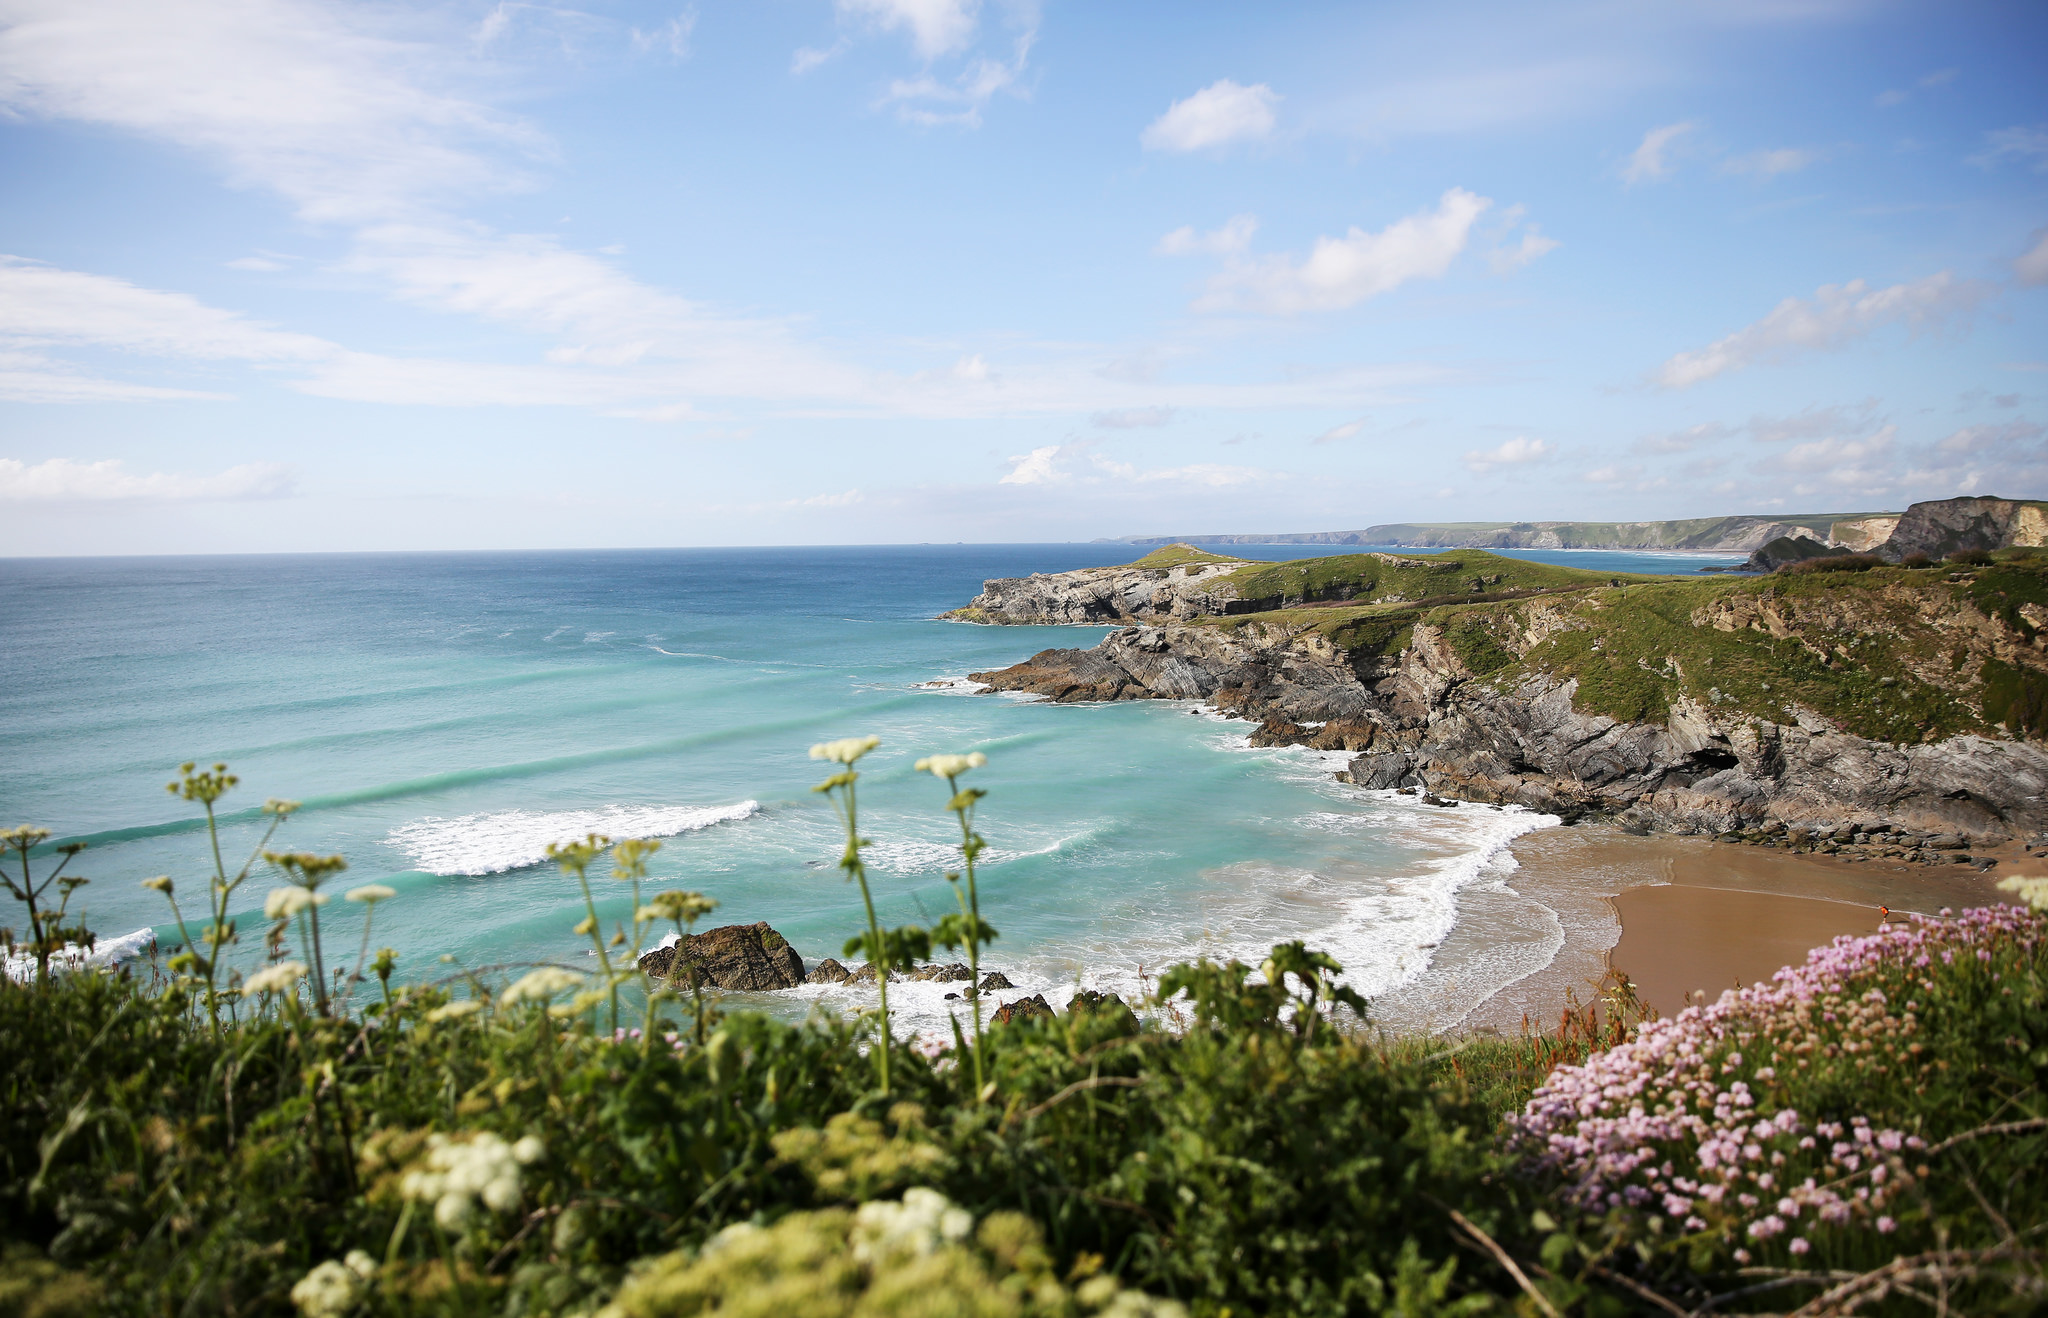 Cornish beach views